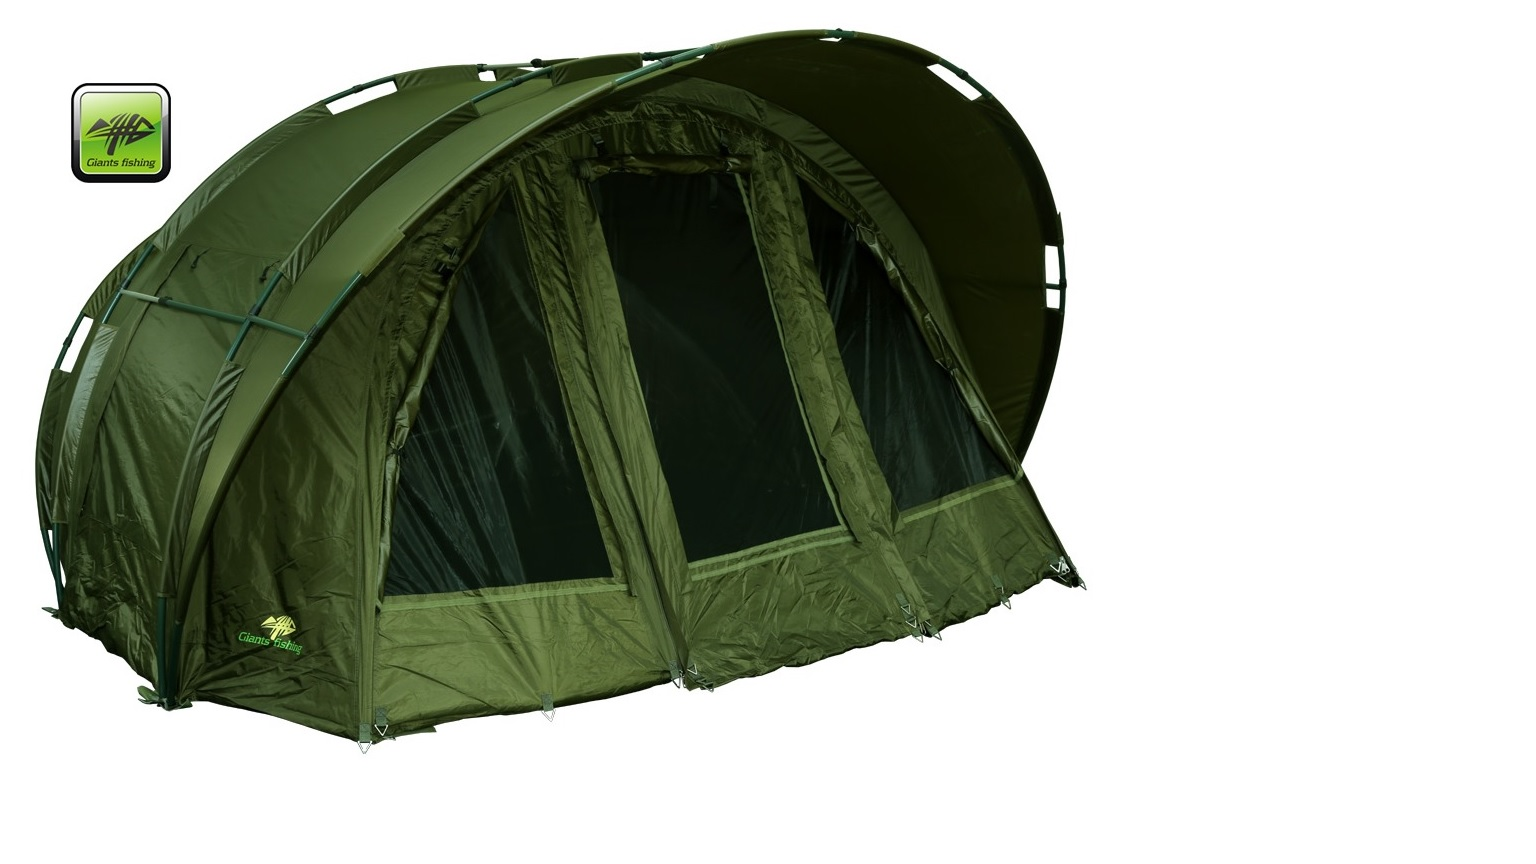 GIANTS FISHING MX Dome Bivvy 2 Man